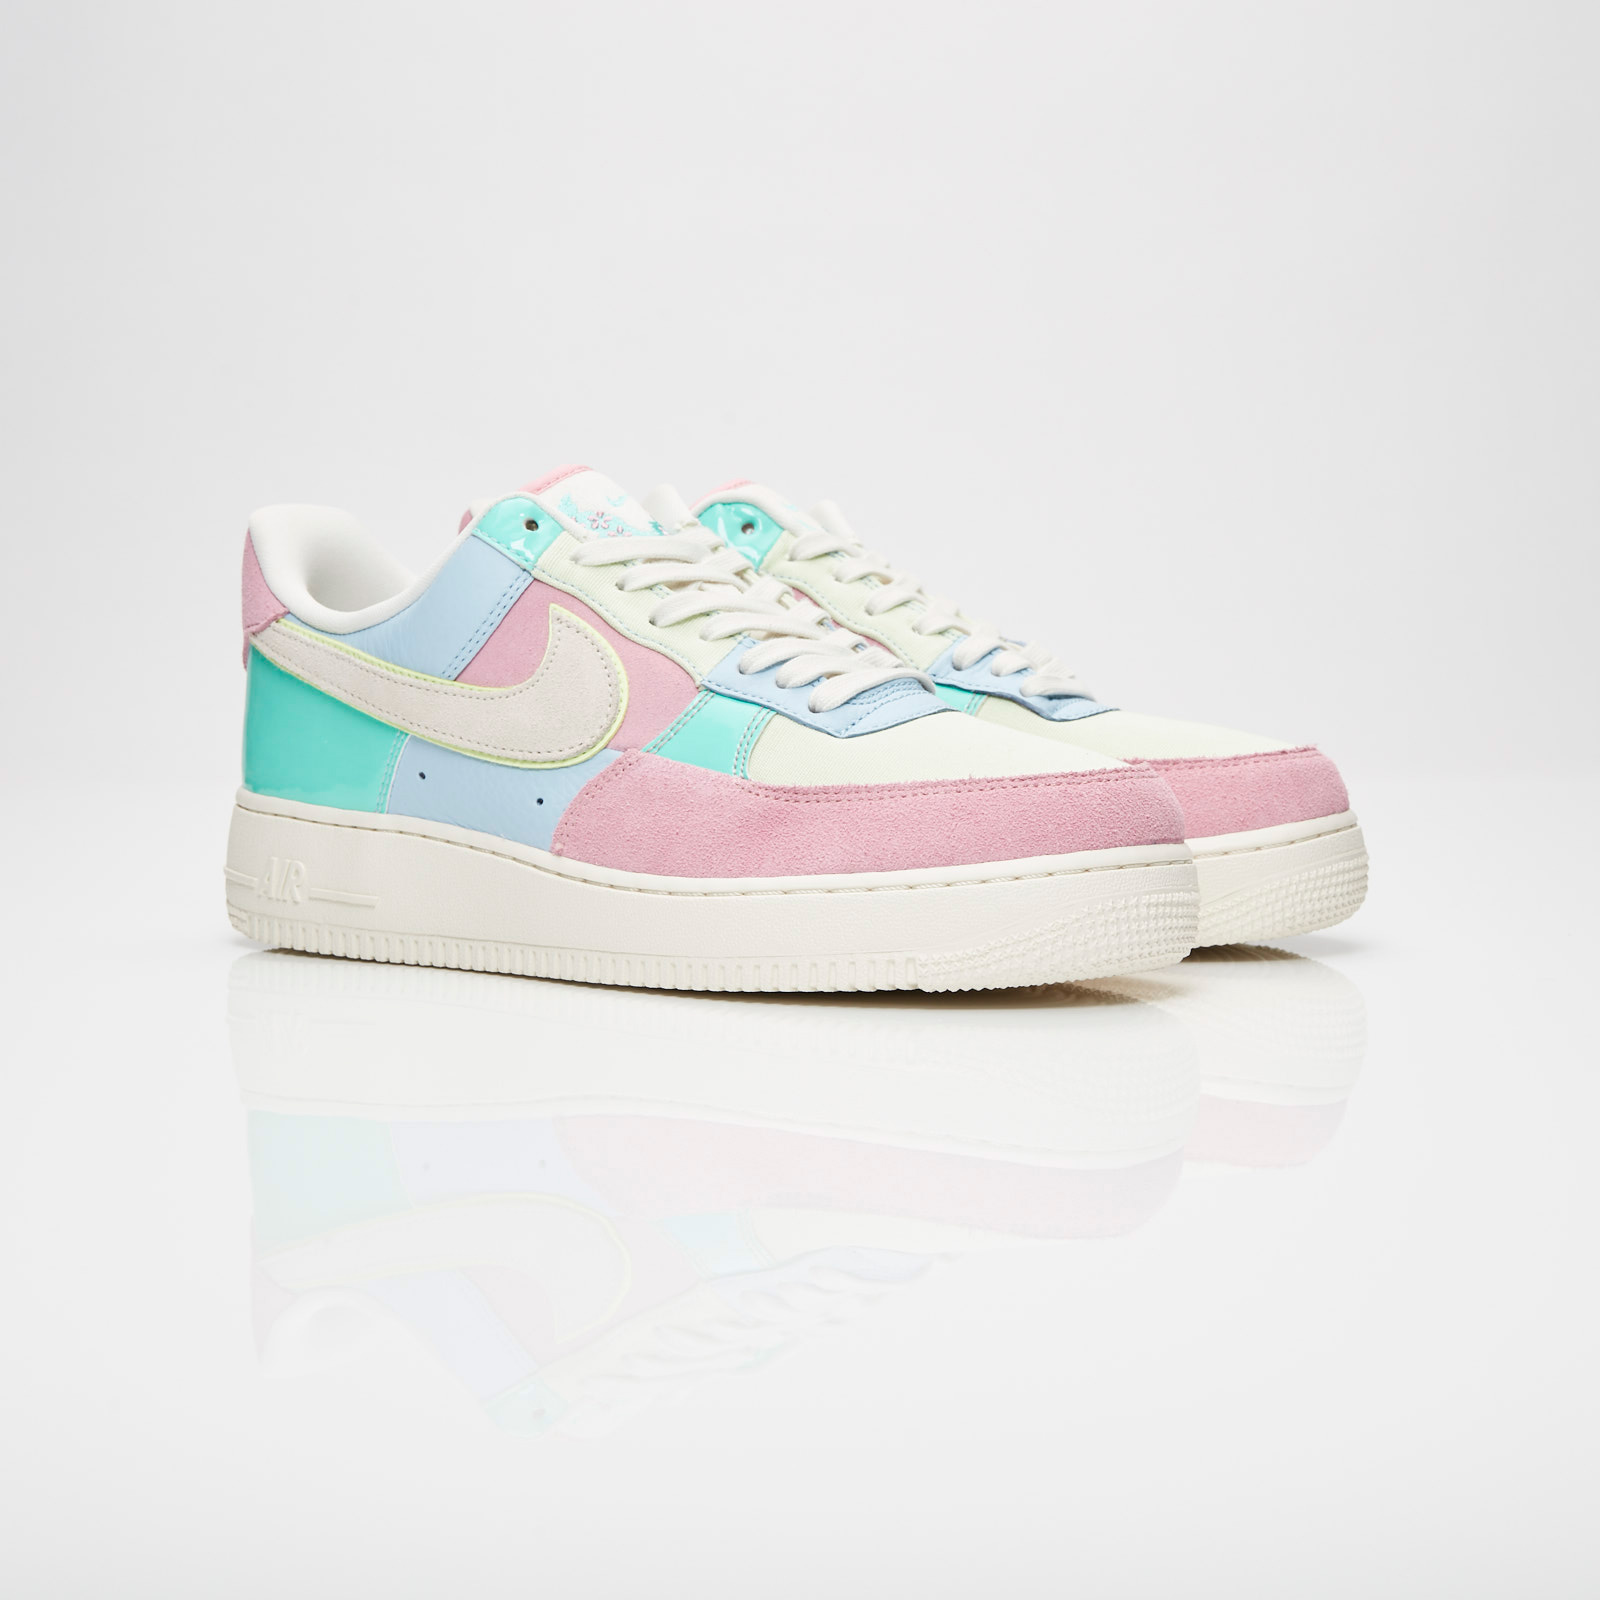 Mens Womens Nike Mens Air Force 1 '07 QS Turquoise Pink